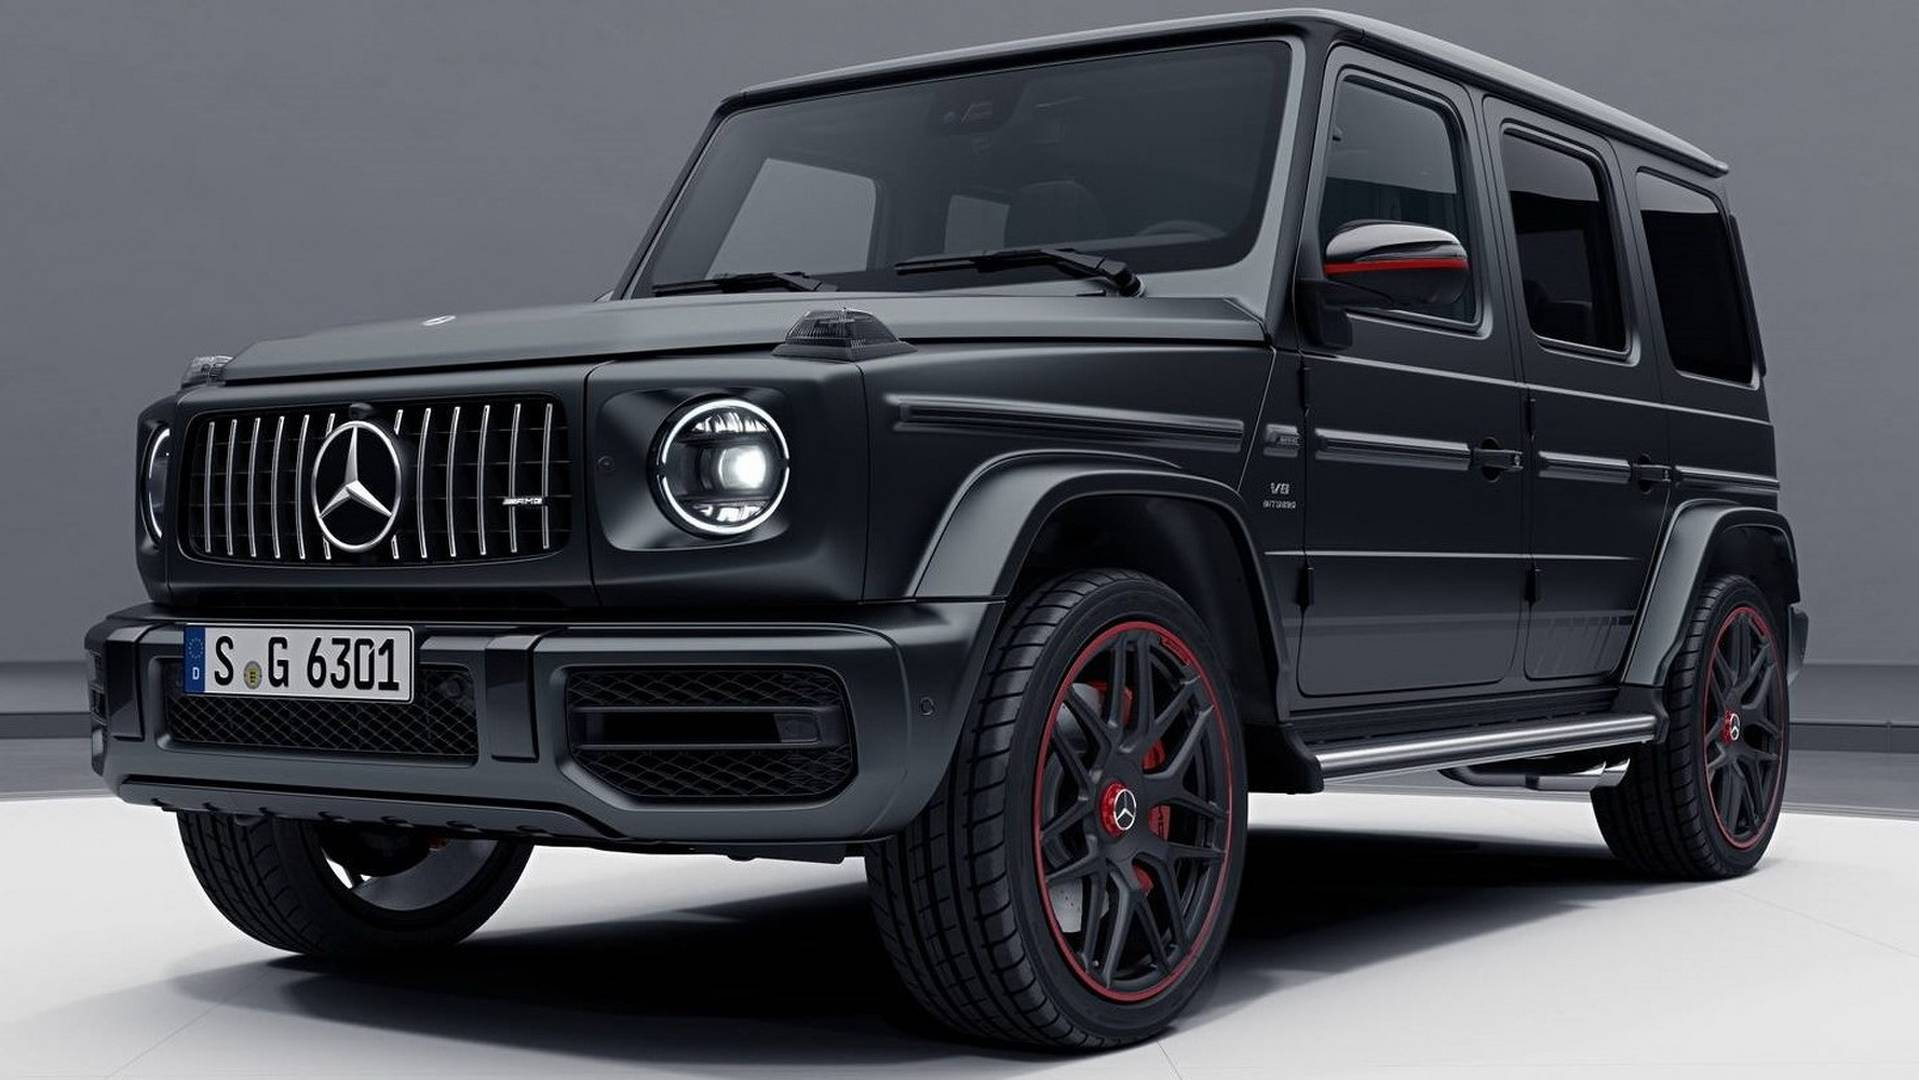 Mercedes AMG G63 Edition 1 Could Be The Perfect Getaway Car